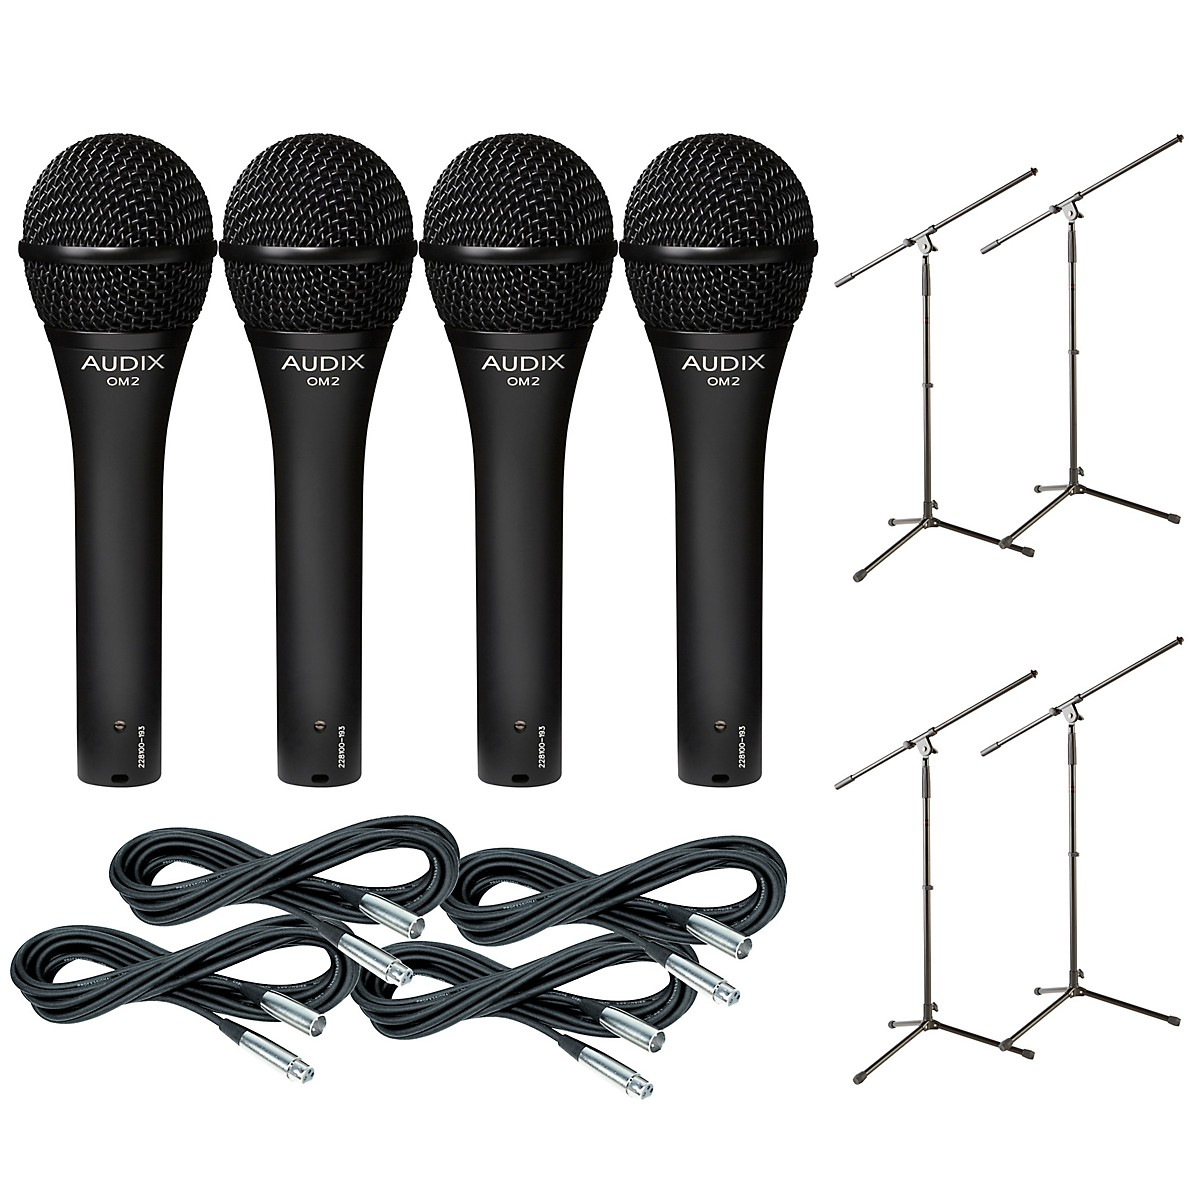 Audix OM-5 Mic with Cable and Stand 4 Pack